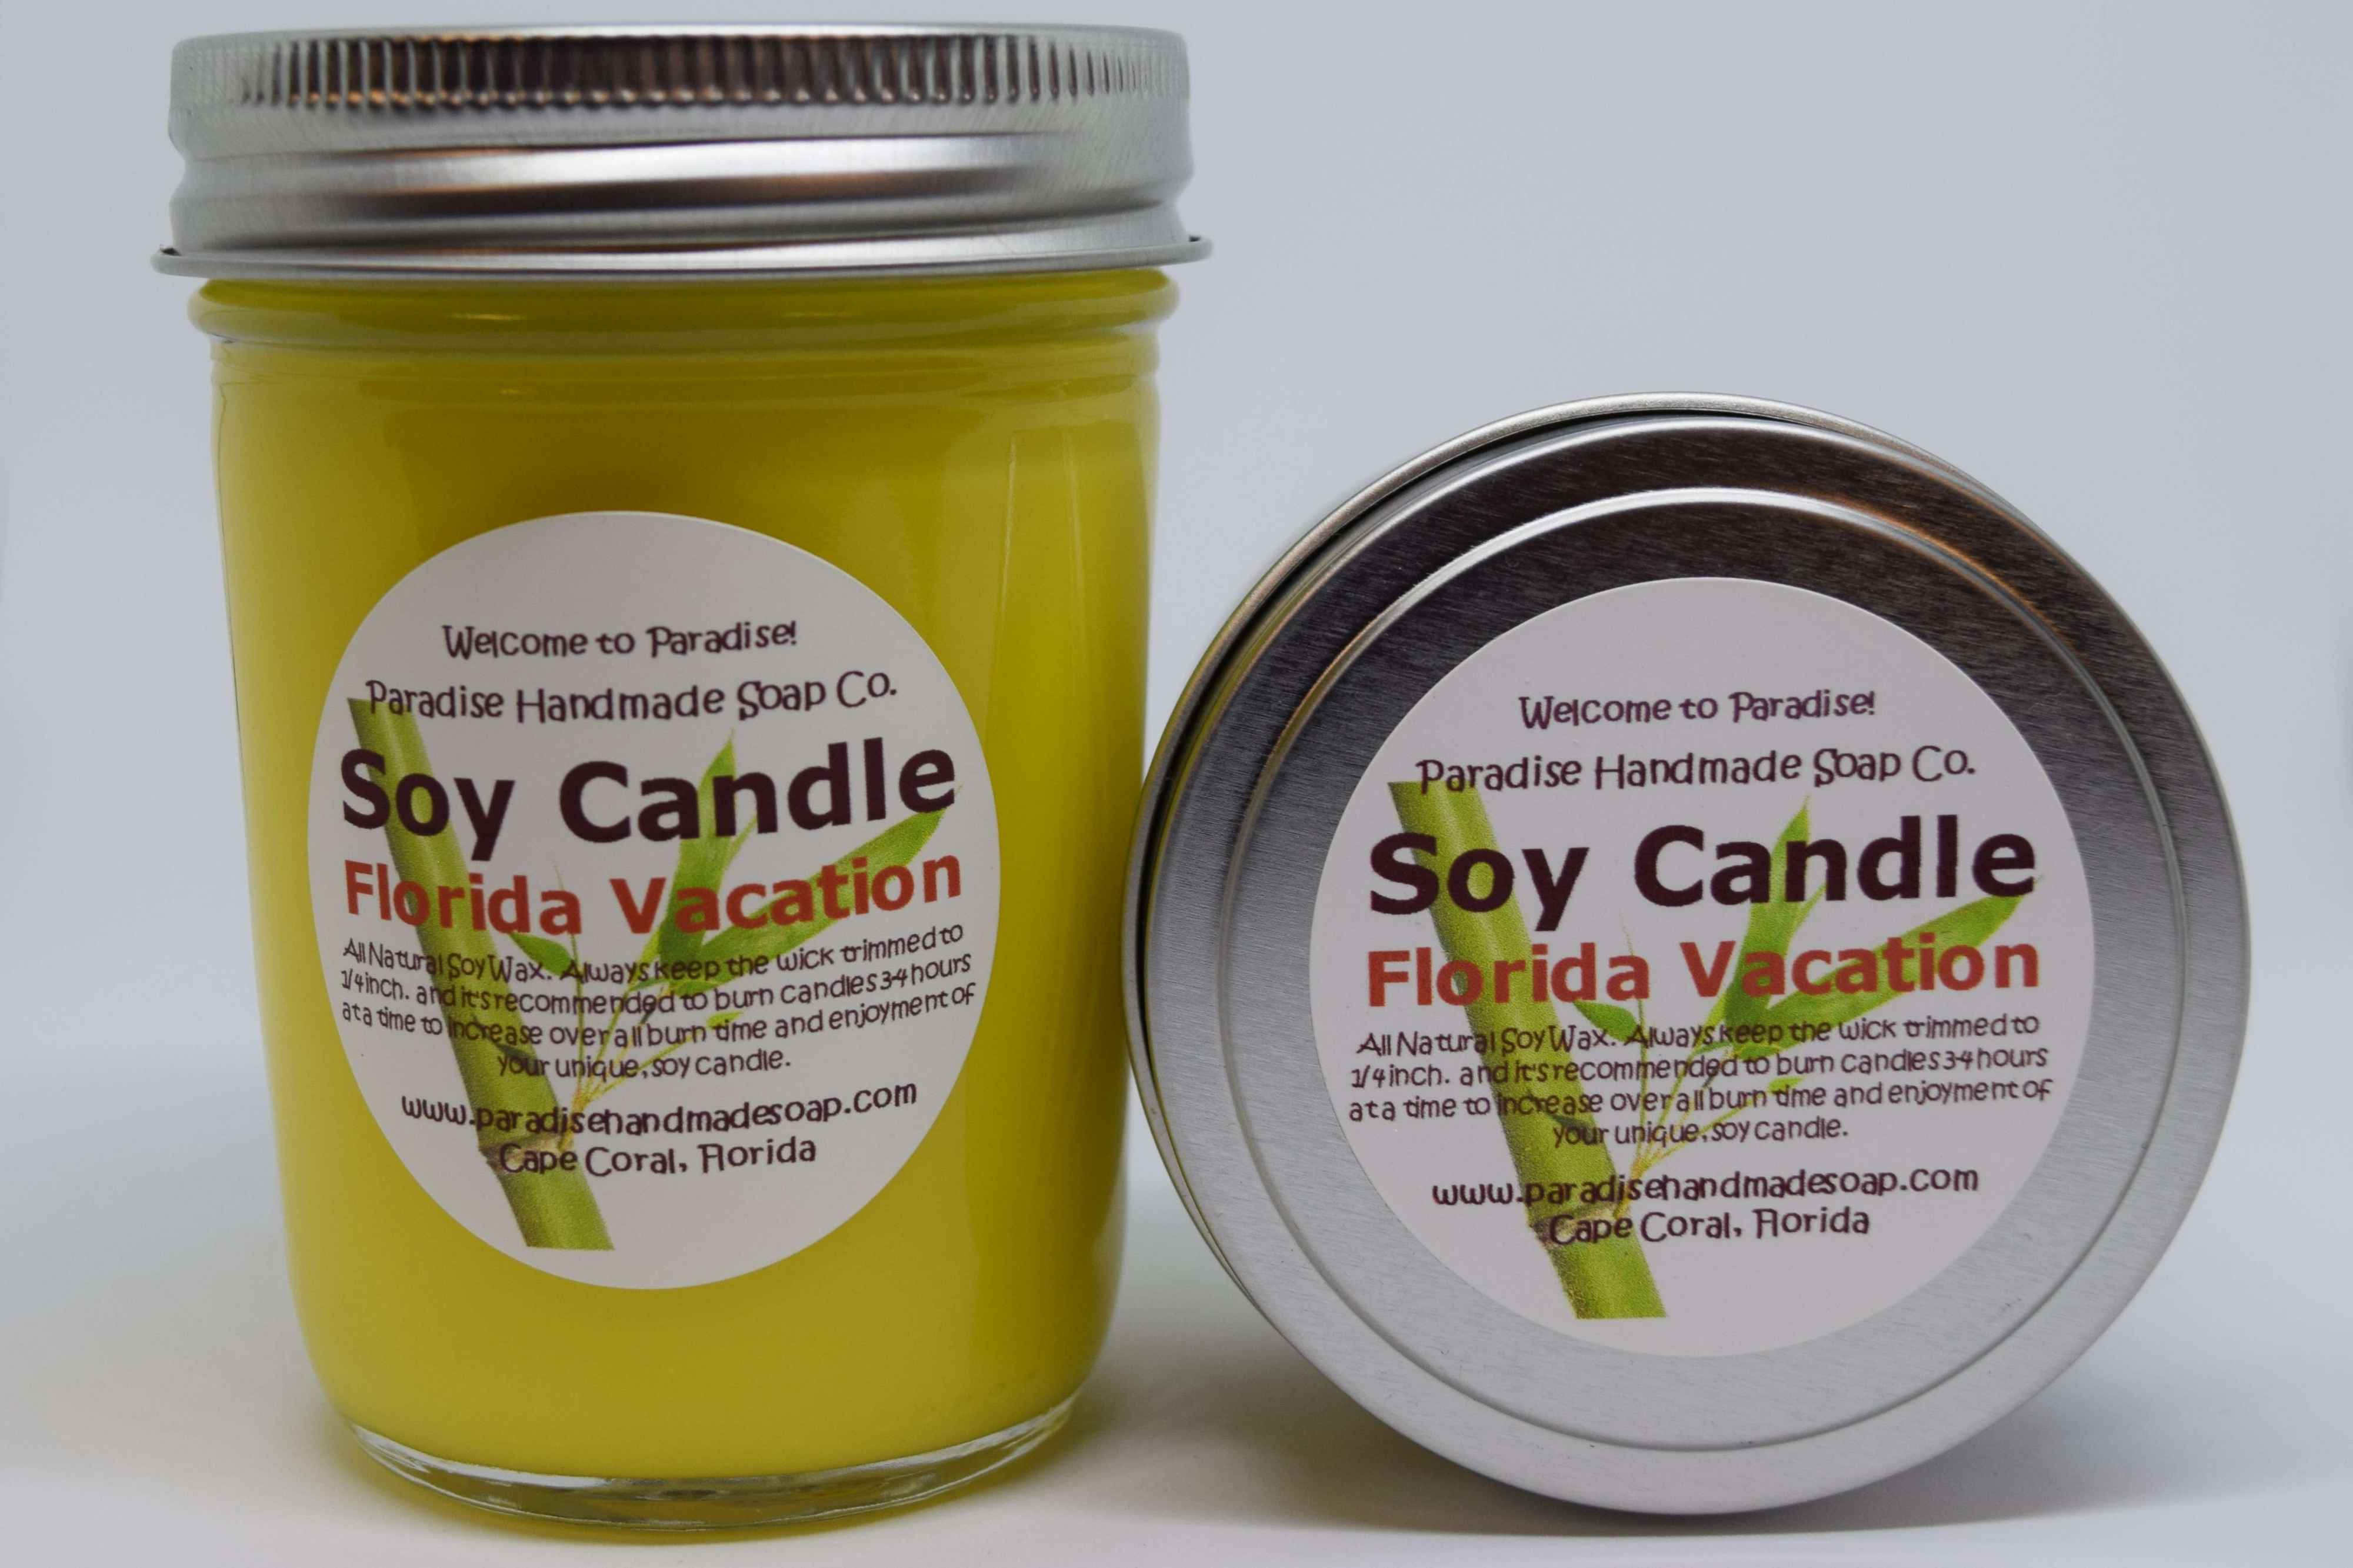 Florida Vacation Candle